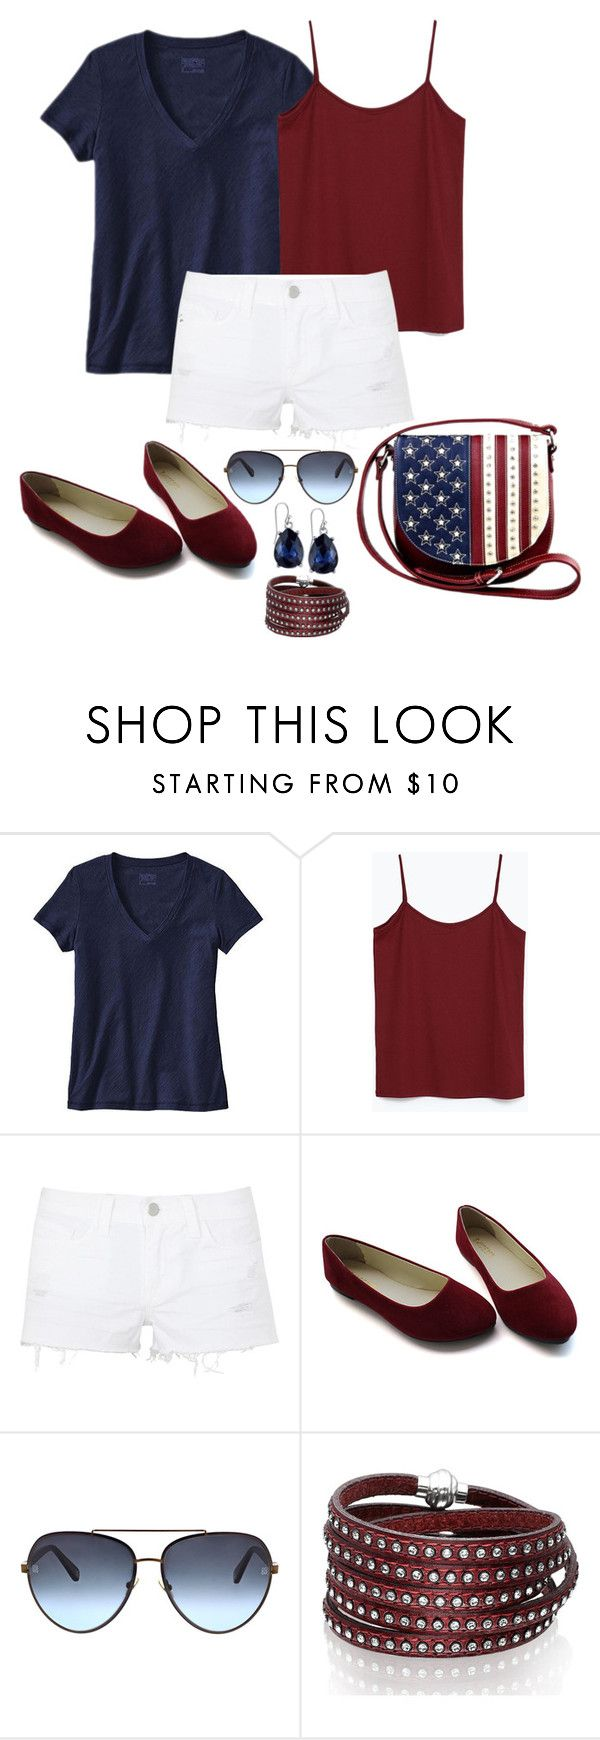 """""""Untitled #1083"""" by gallant81 ❤ liked on Polyvore featuring Patagonia, Zara, J Brand, Montana West, Oscar de la Renta, Sif Jakobs Jewellery and 2028"""